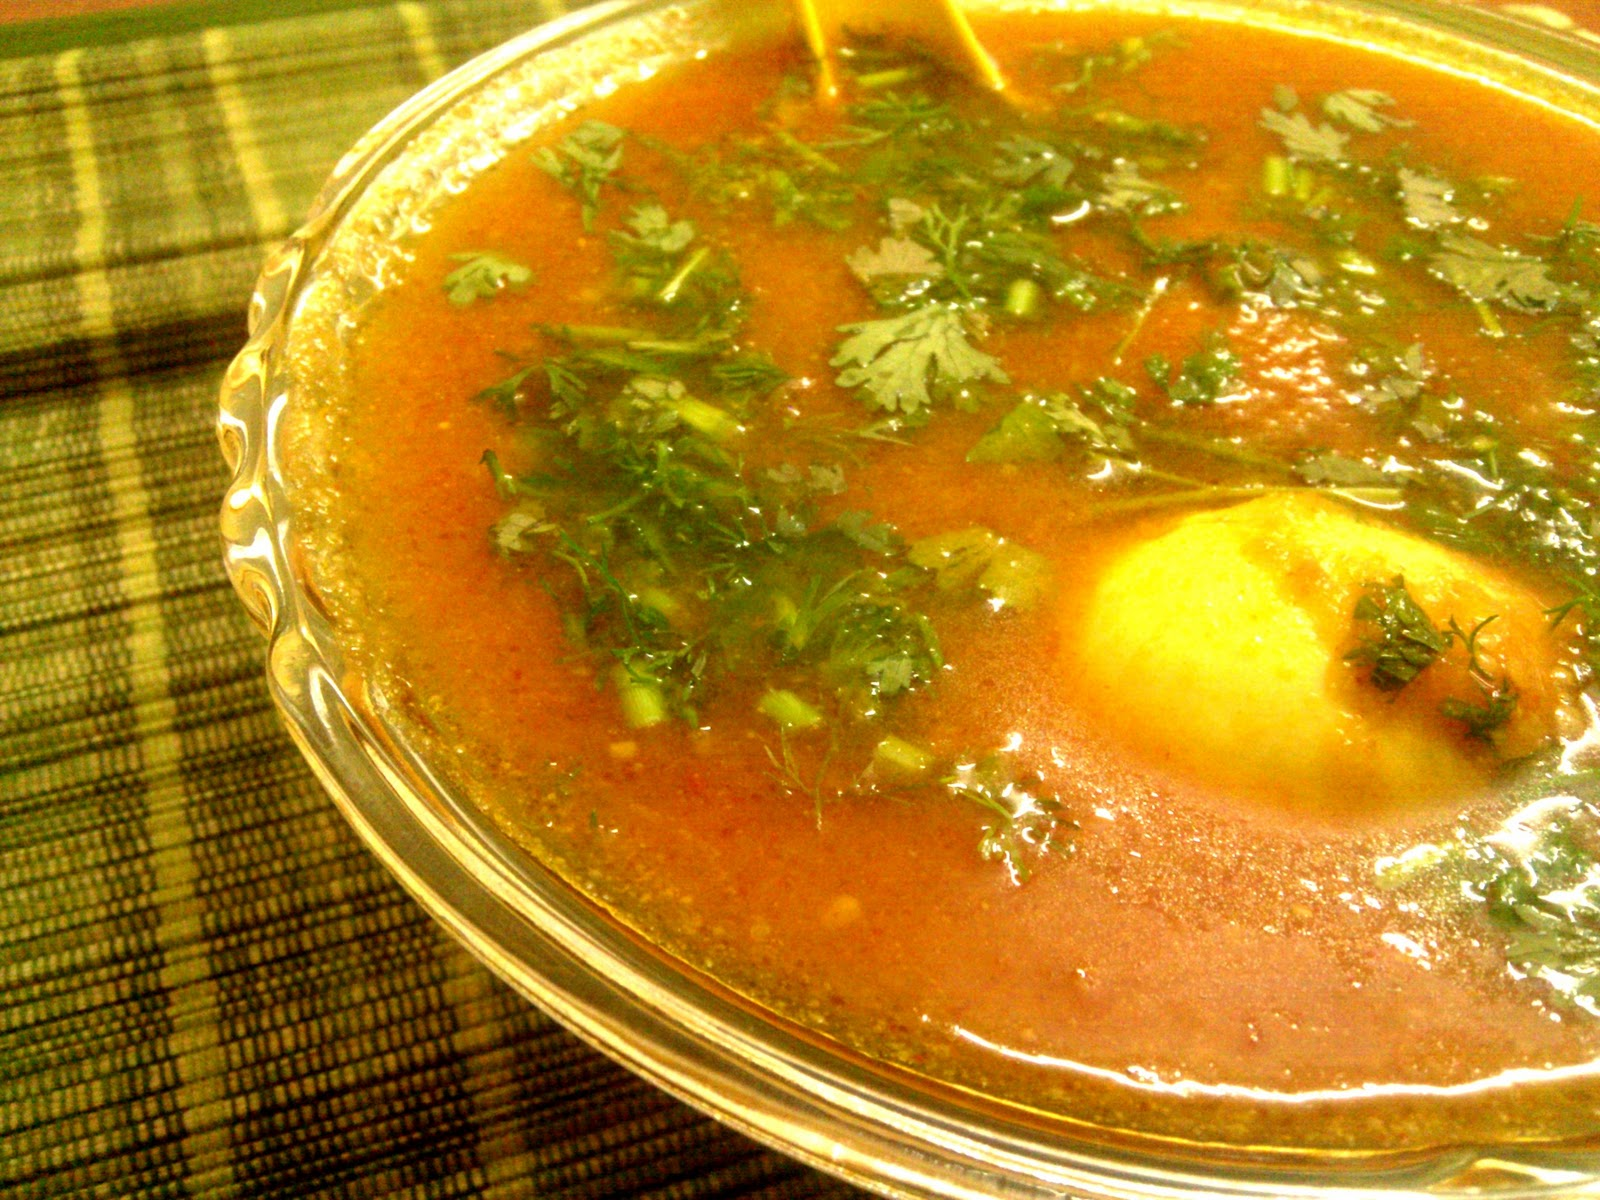 Egg Curry Series: Dimer Dalna / 10 Minute Egg Curry - An Egg Curry